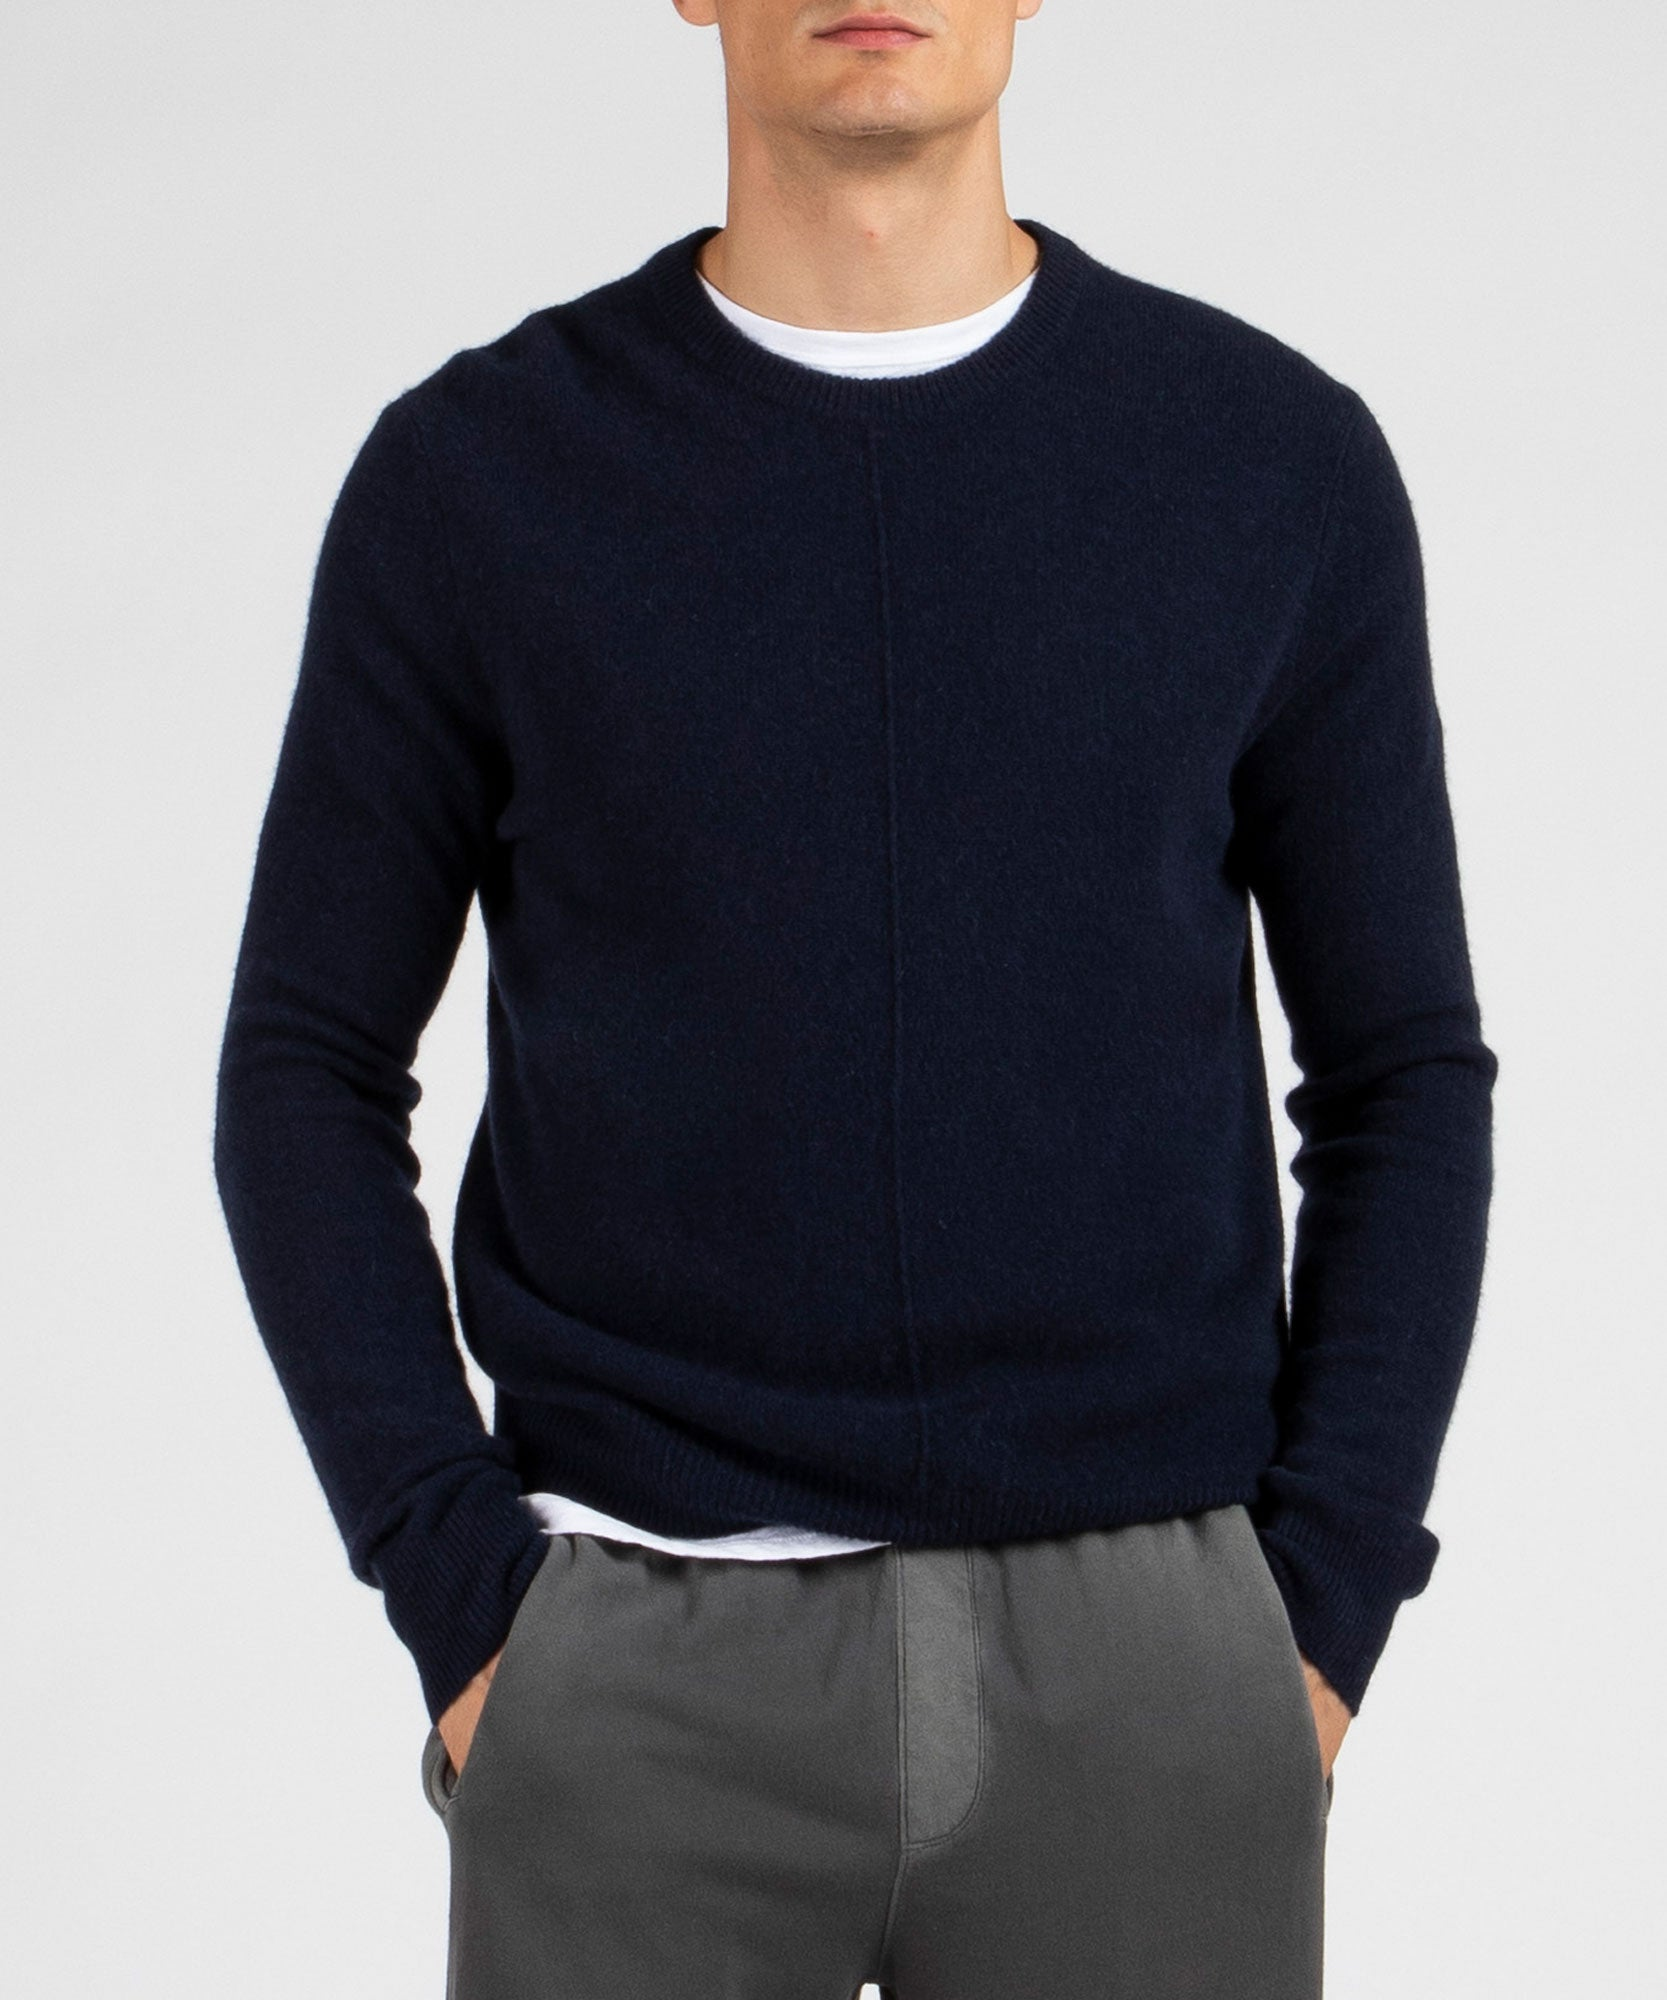 Midnight Cashmere Exposed Seam Crew Neck Sweater - Men's Cashmere Sweater by ATM Anthony Thomas Melillo